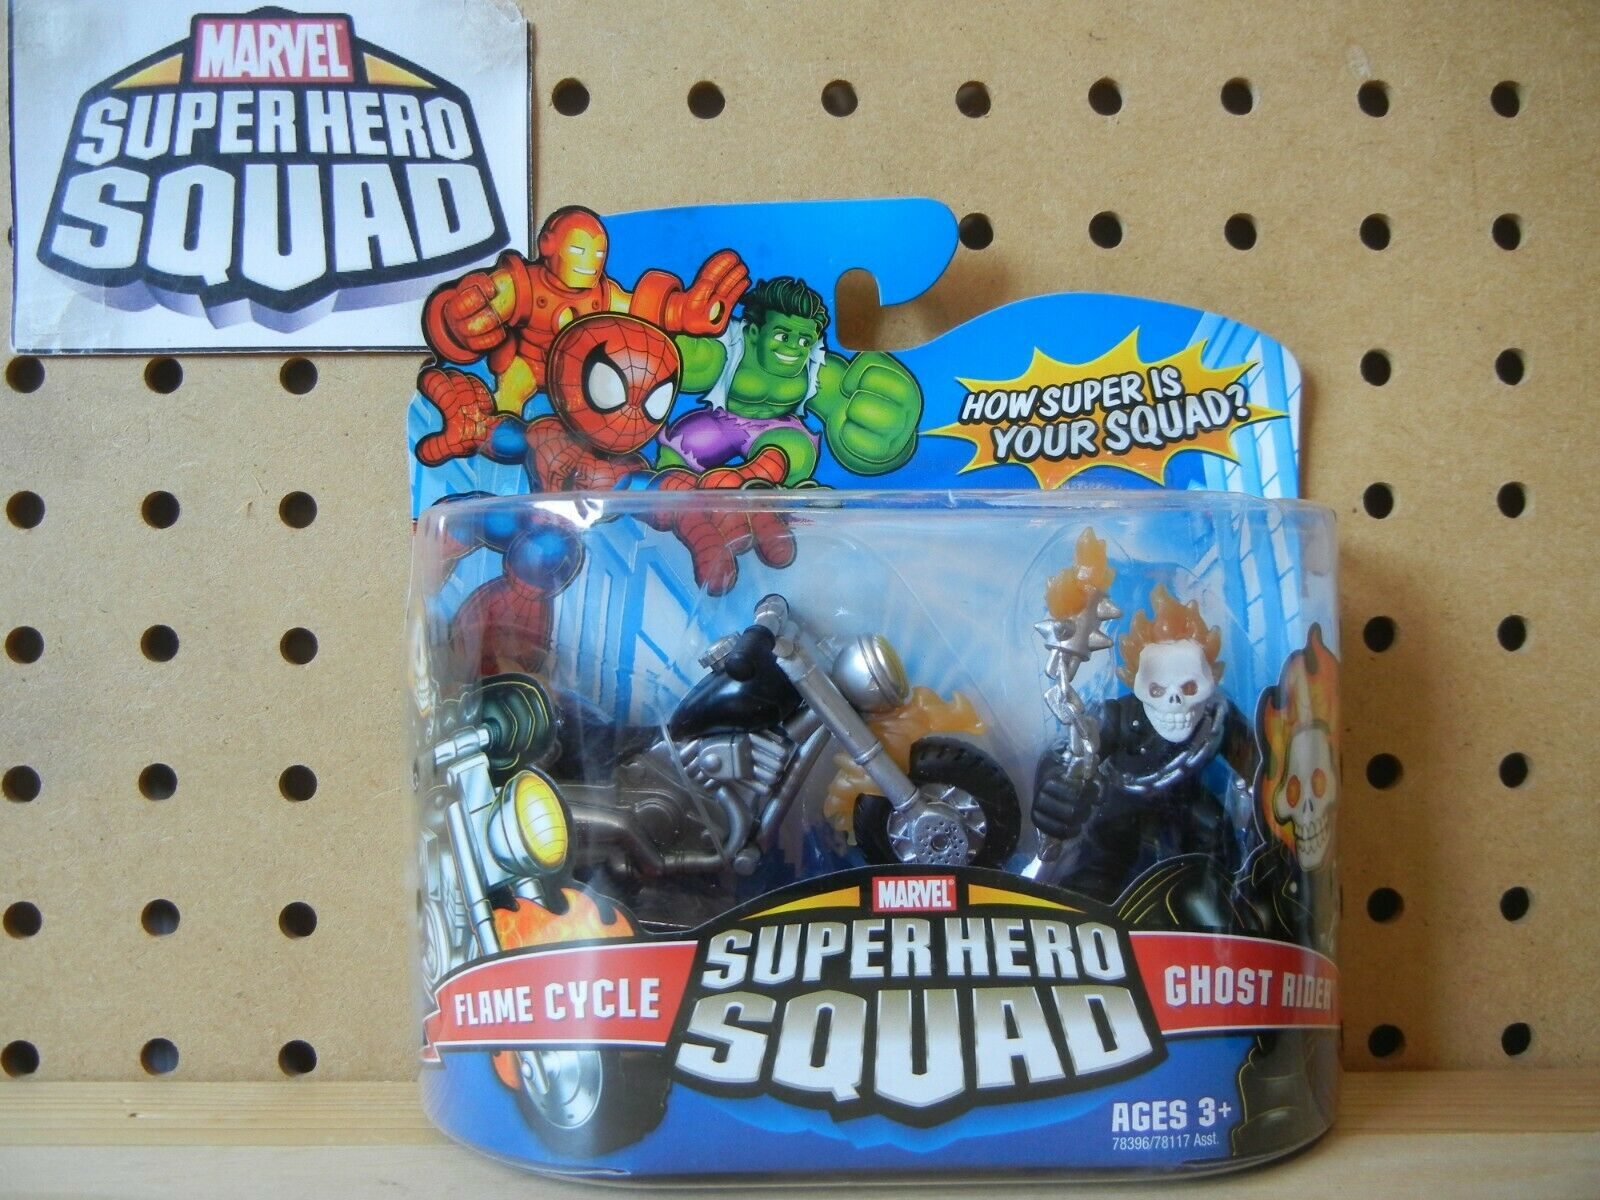 Marvel Super Hero Squad RARE SEALED Wave Wave Wave 18 GHOST RIDER & FLAME CYCLE Motorcycle b91312